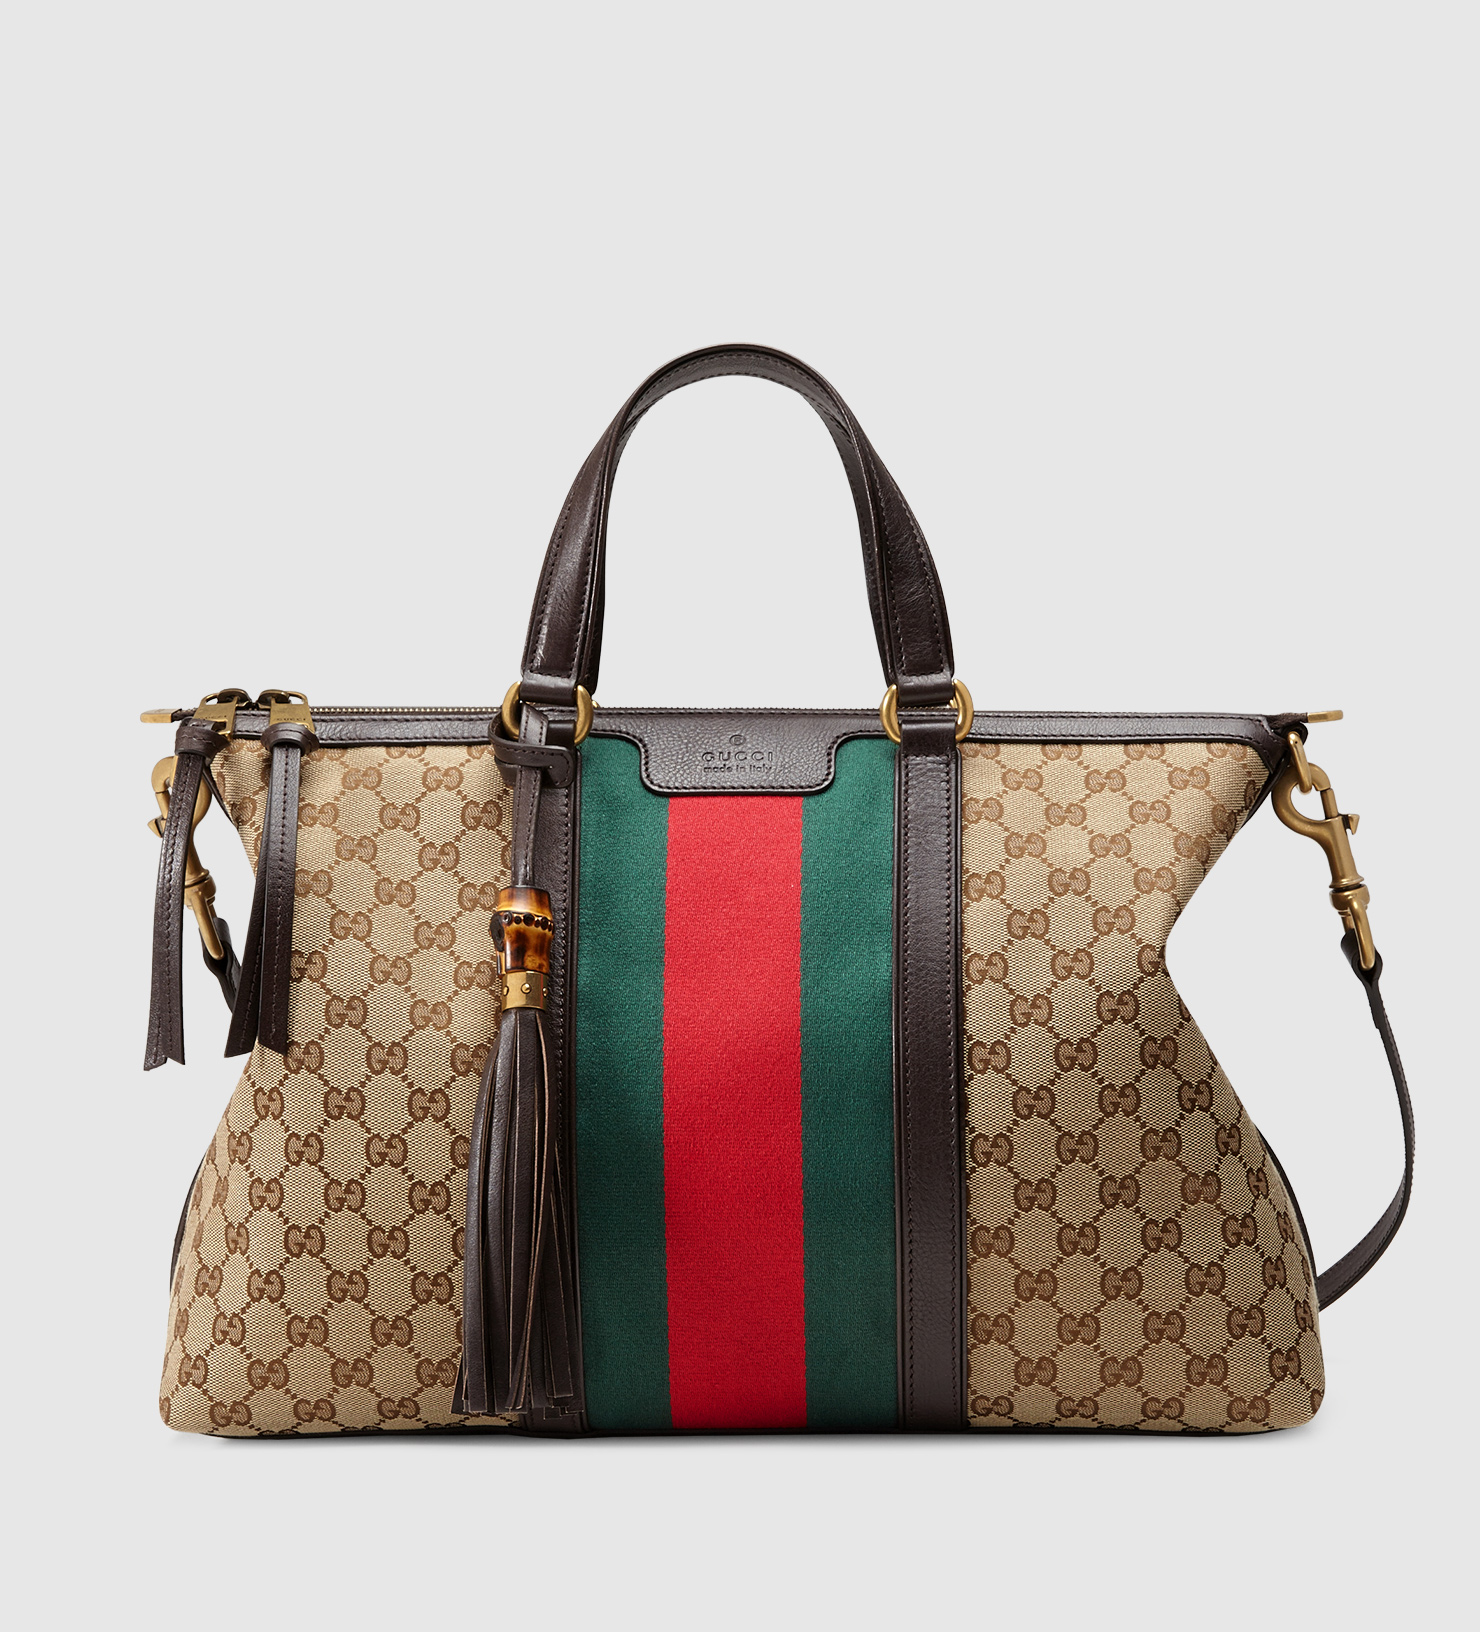 c4a9aac975 Gucci Rania Original Gg Canvas Top Handle Bag in Brown - Lyst